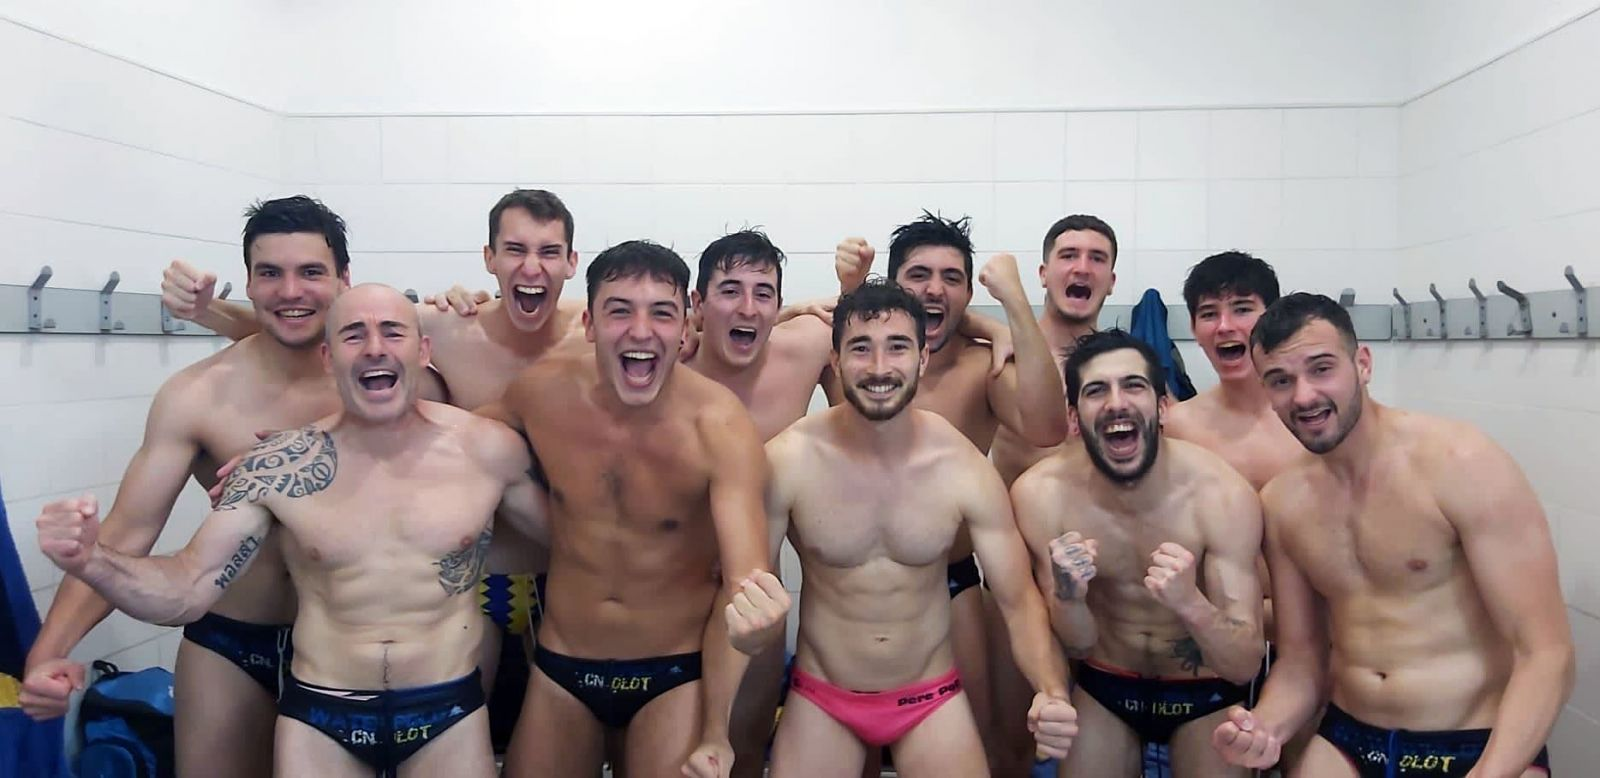 http://www.cnolot.cat/media/user/images/20210605_cnolot_waterpolo_aesanta_eulalia_vs_absolut_a_barcelona.jpg